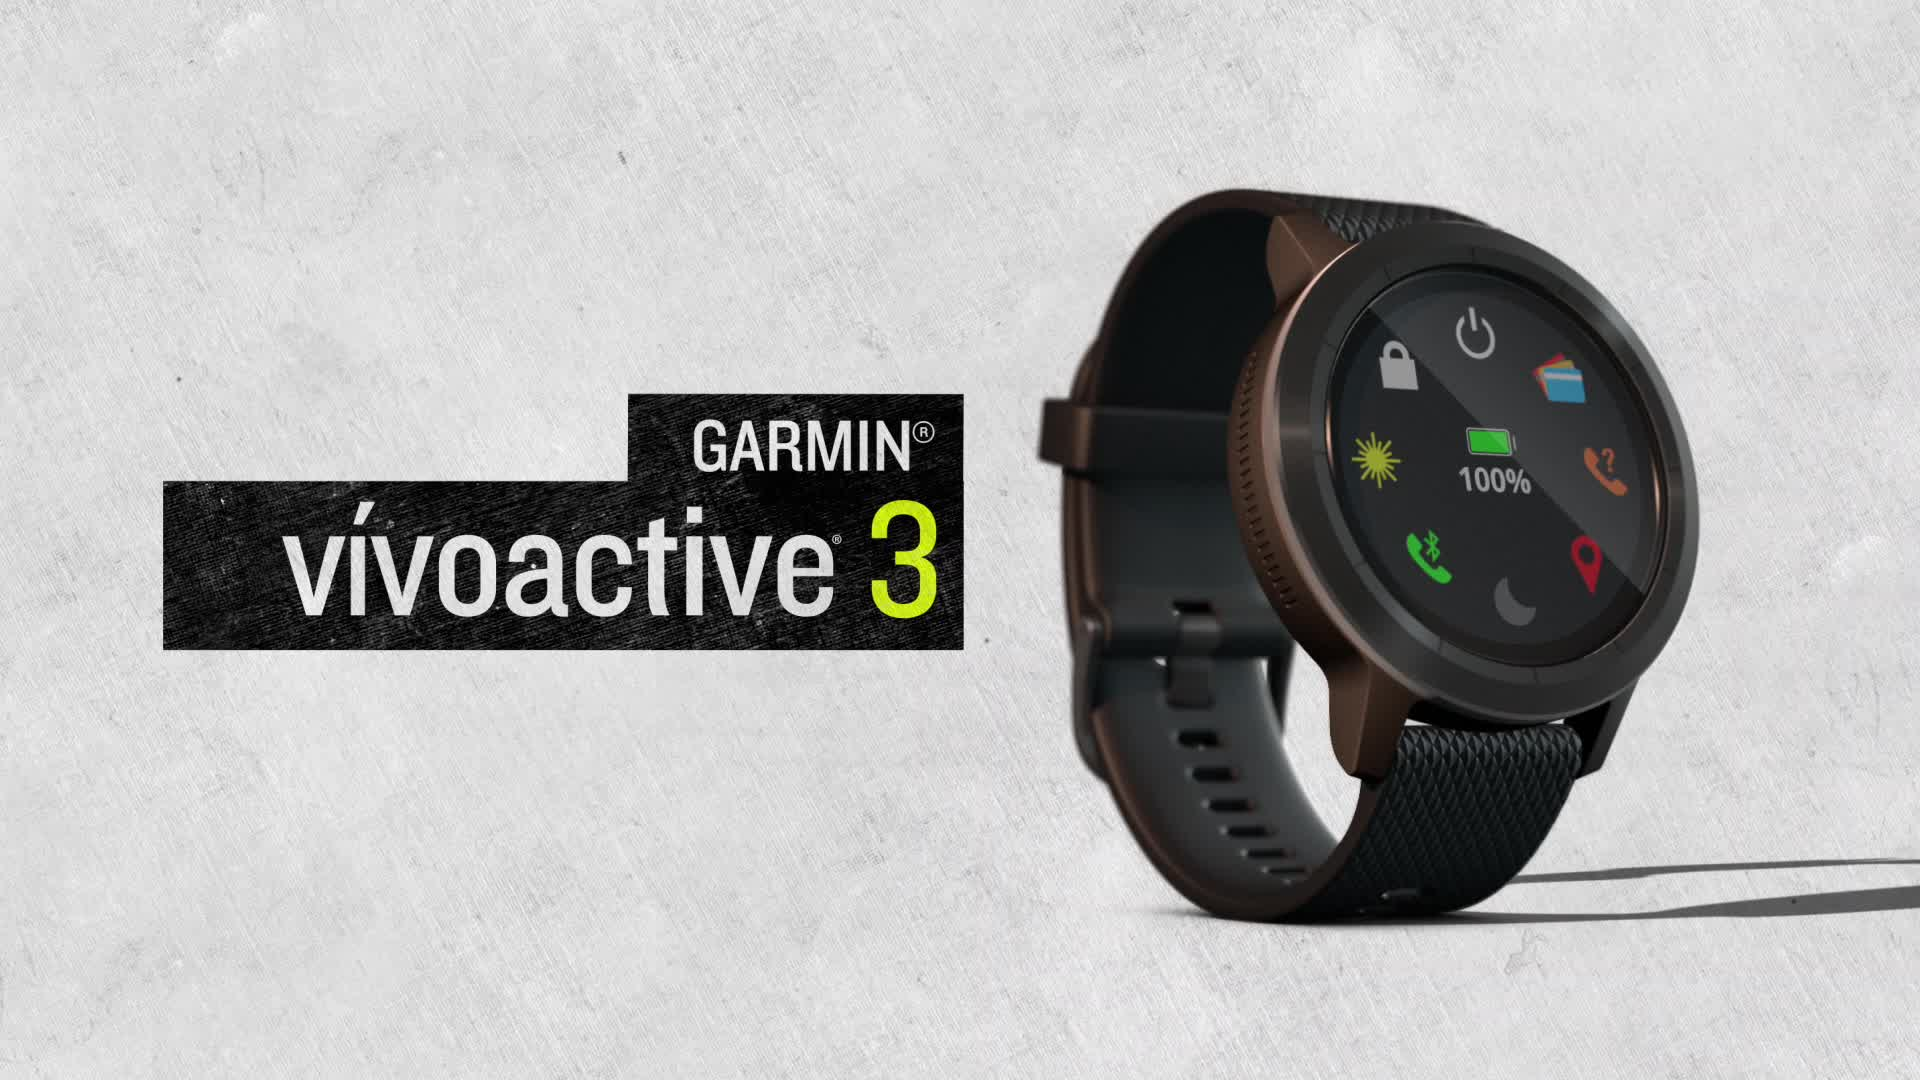 montre connect e de sport garmin vivoactive 3 avec gps et cardio poignet grise avec bracelet. Black Bedroom Furniture Sets. Home Design Ideas